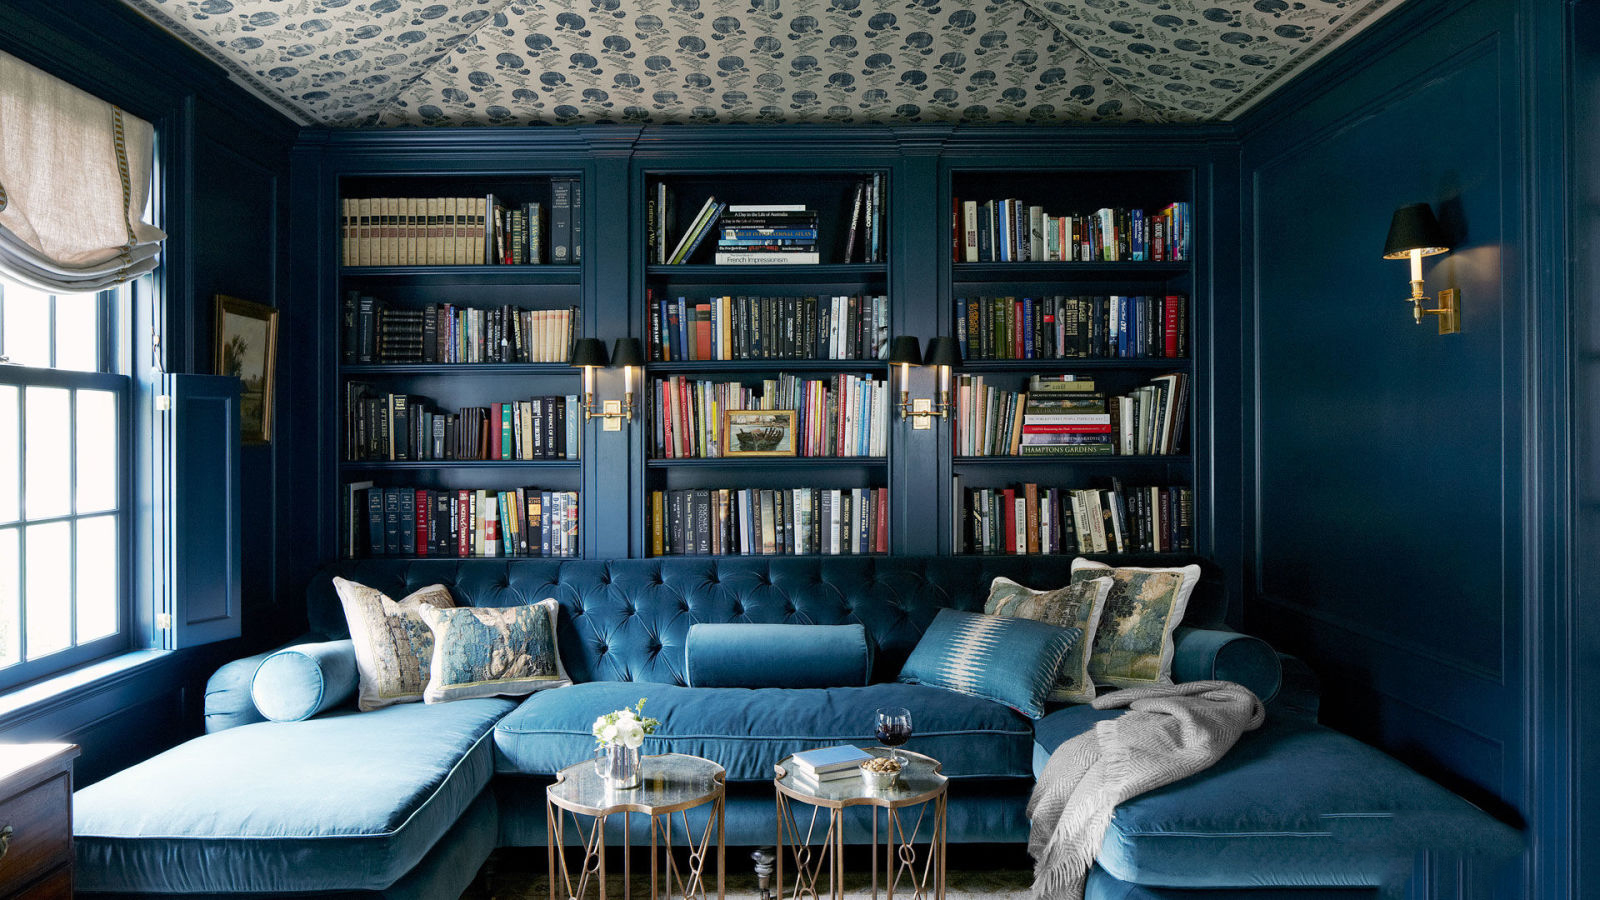 A look inside: House with a Library